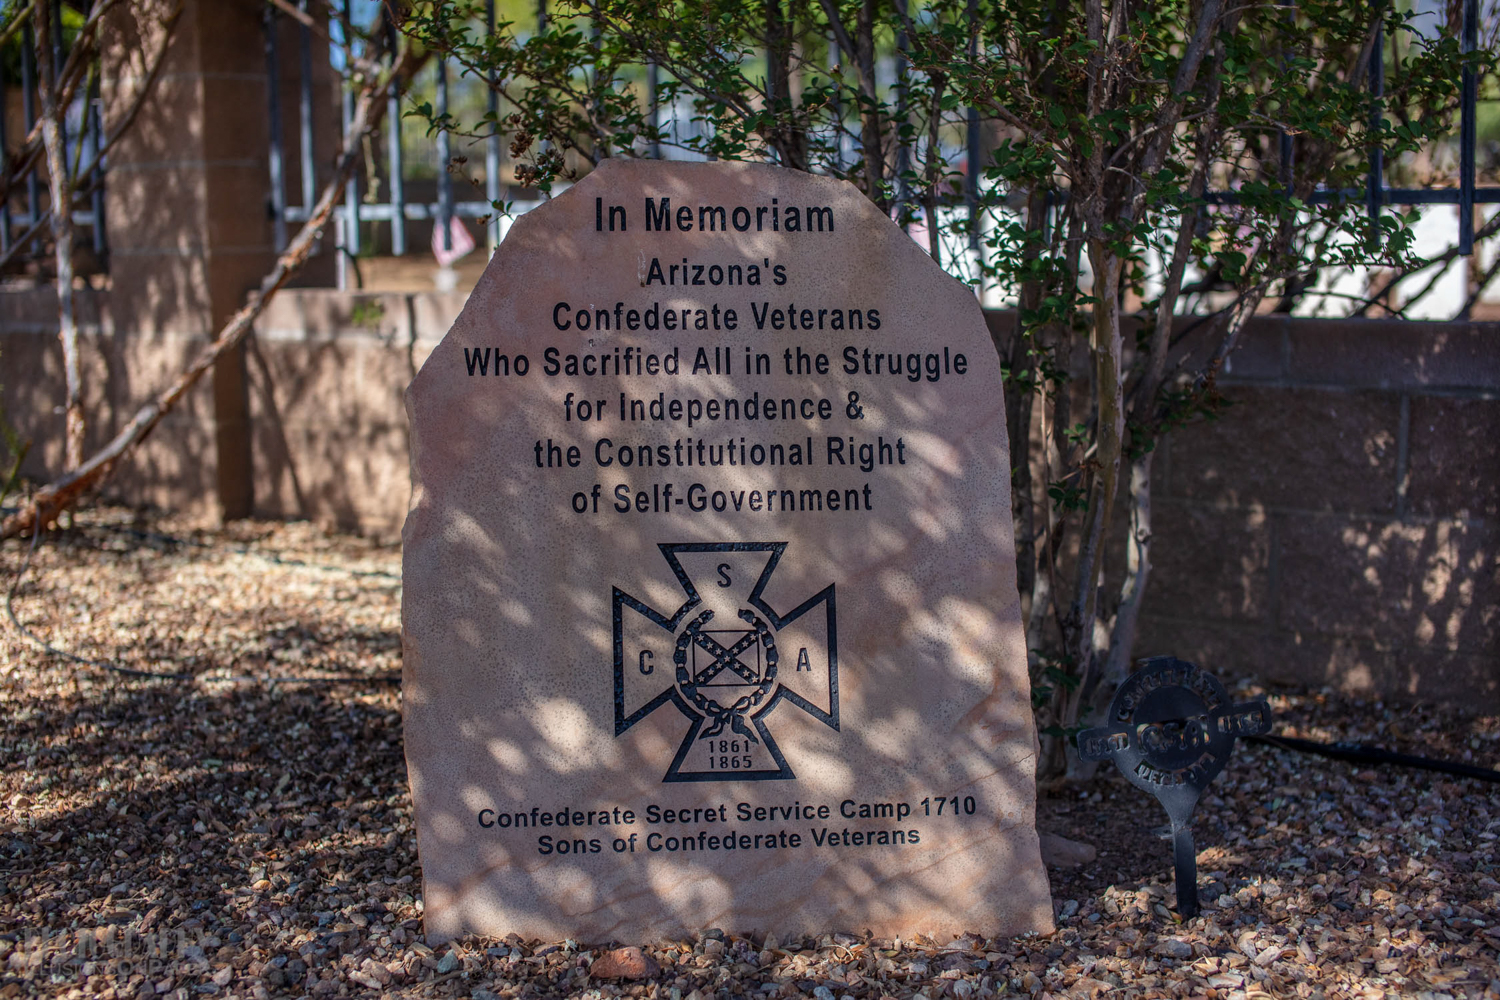 This honors the Confederate veterans.